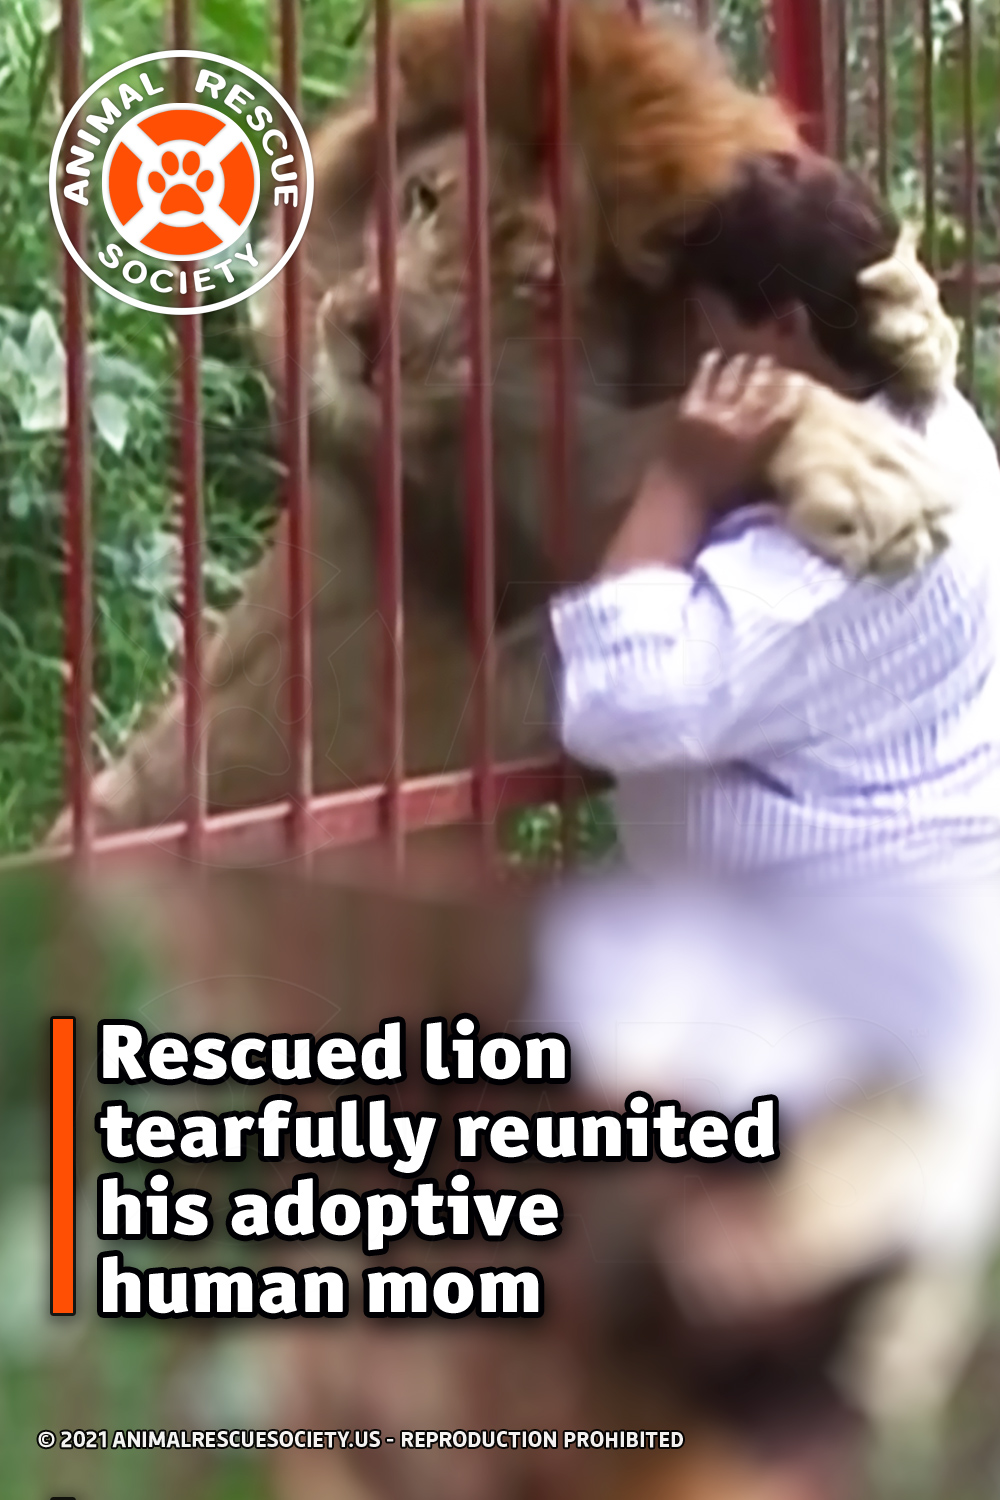 Rescued lion tearfully reunited his adoptive human mom